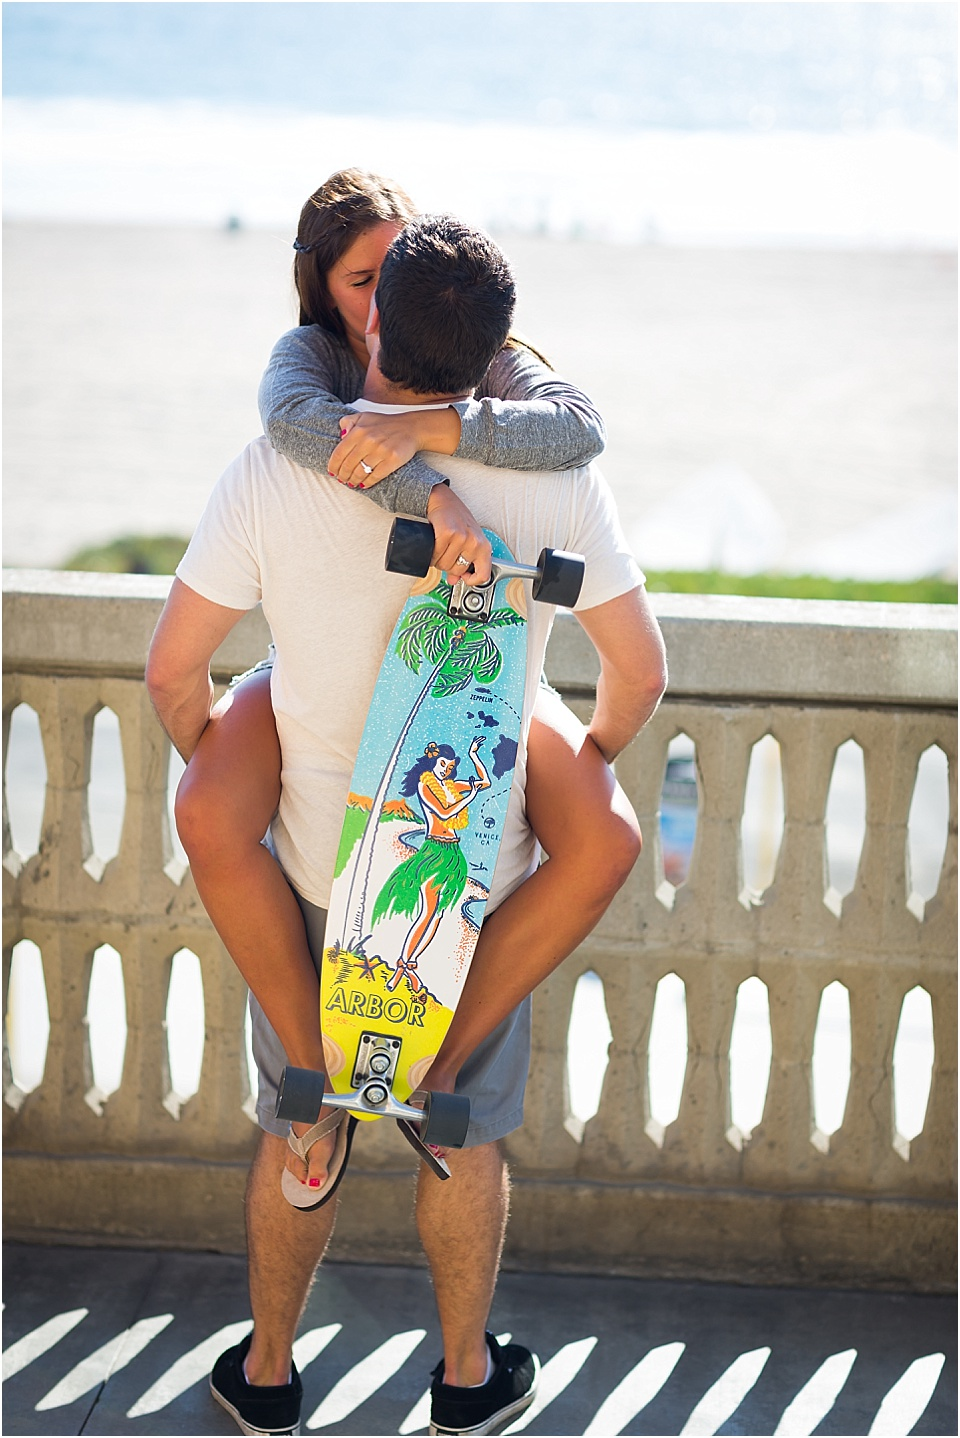 Manhattan Beach - Long boarding - Engagement Photos {Valorie Darling Photography} - 10353.jpg